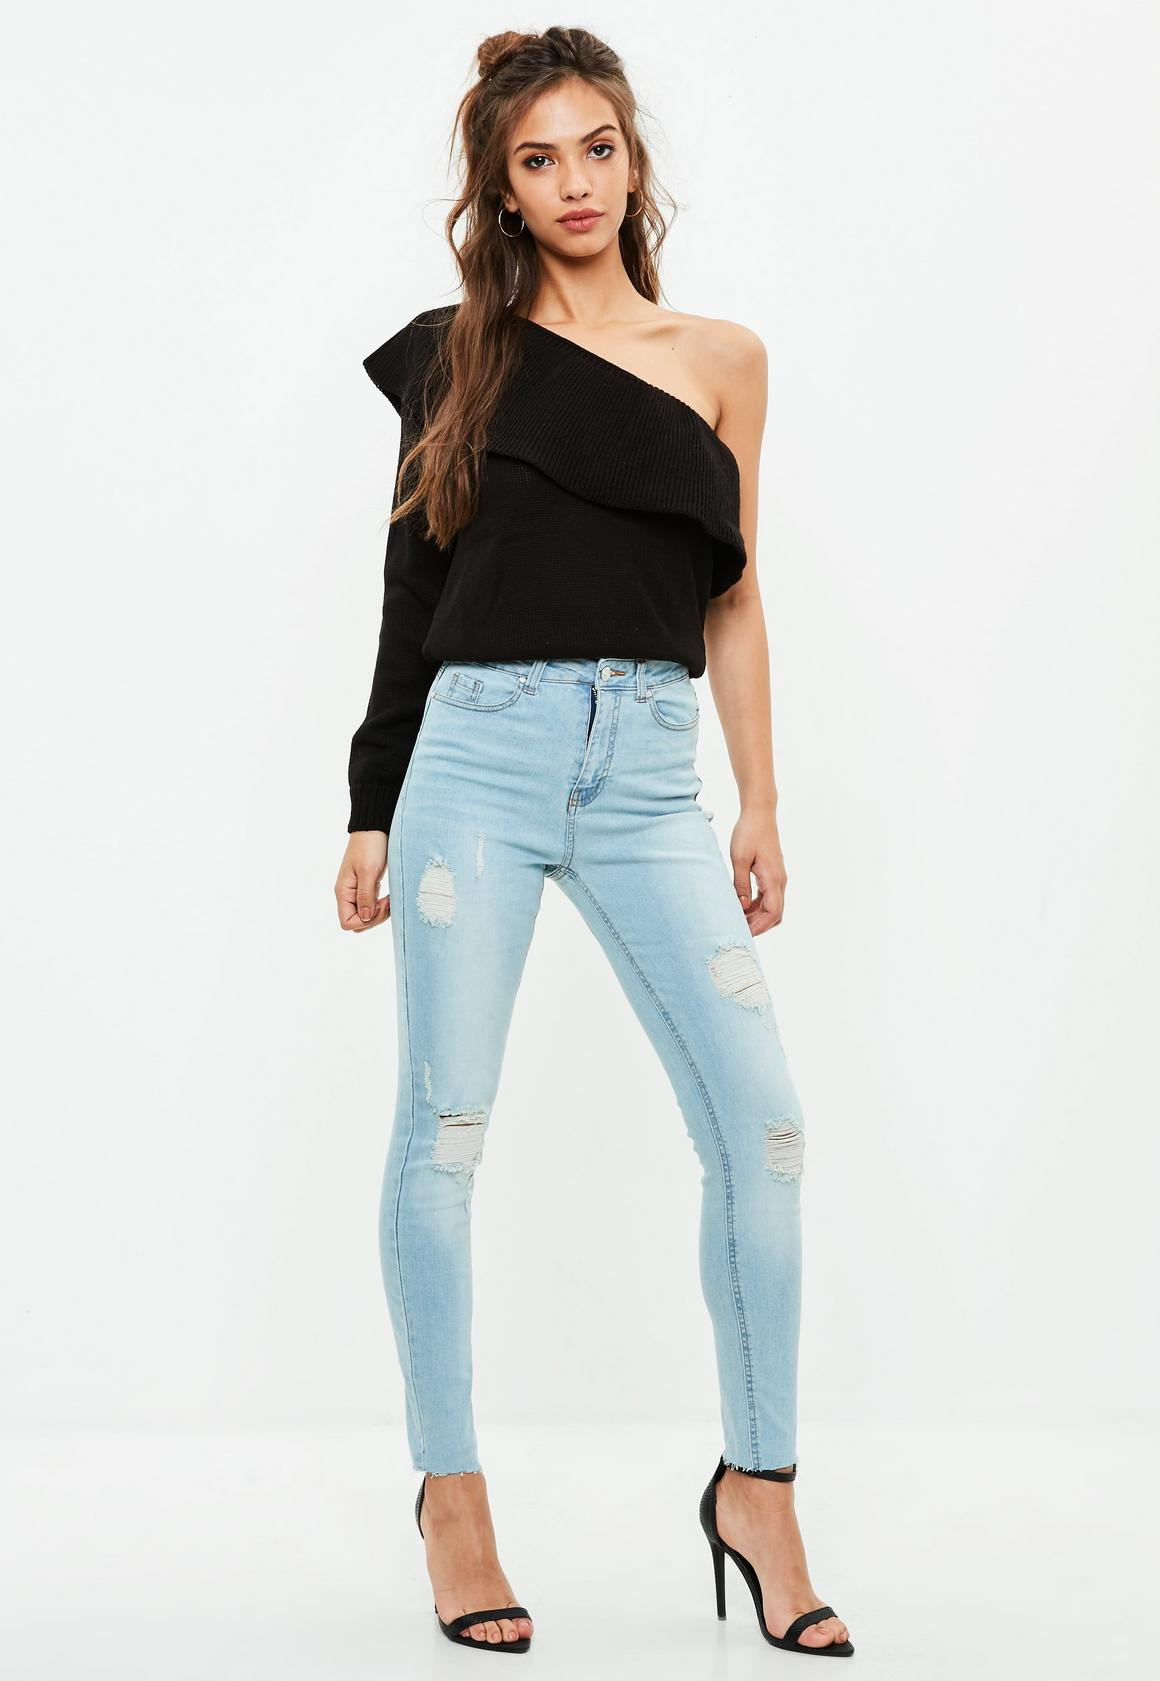 ... Blue Sinner High Waisted Ripped Skinny Jeans - Womens Jeans Ripped, Skinny & Boyfriend Jean - Missguided